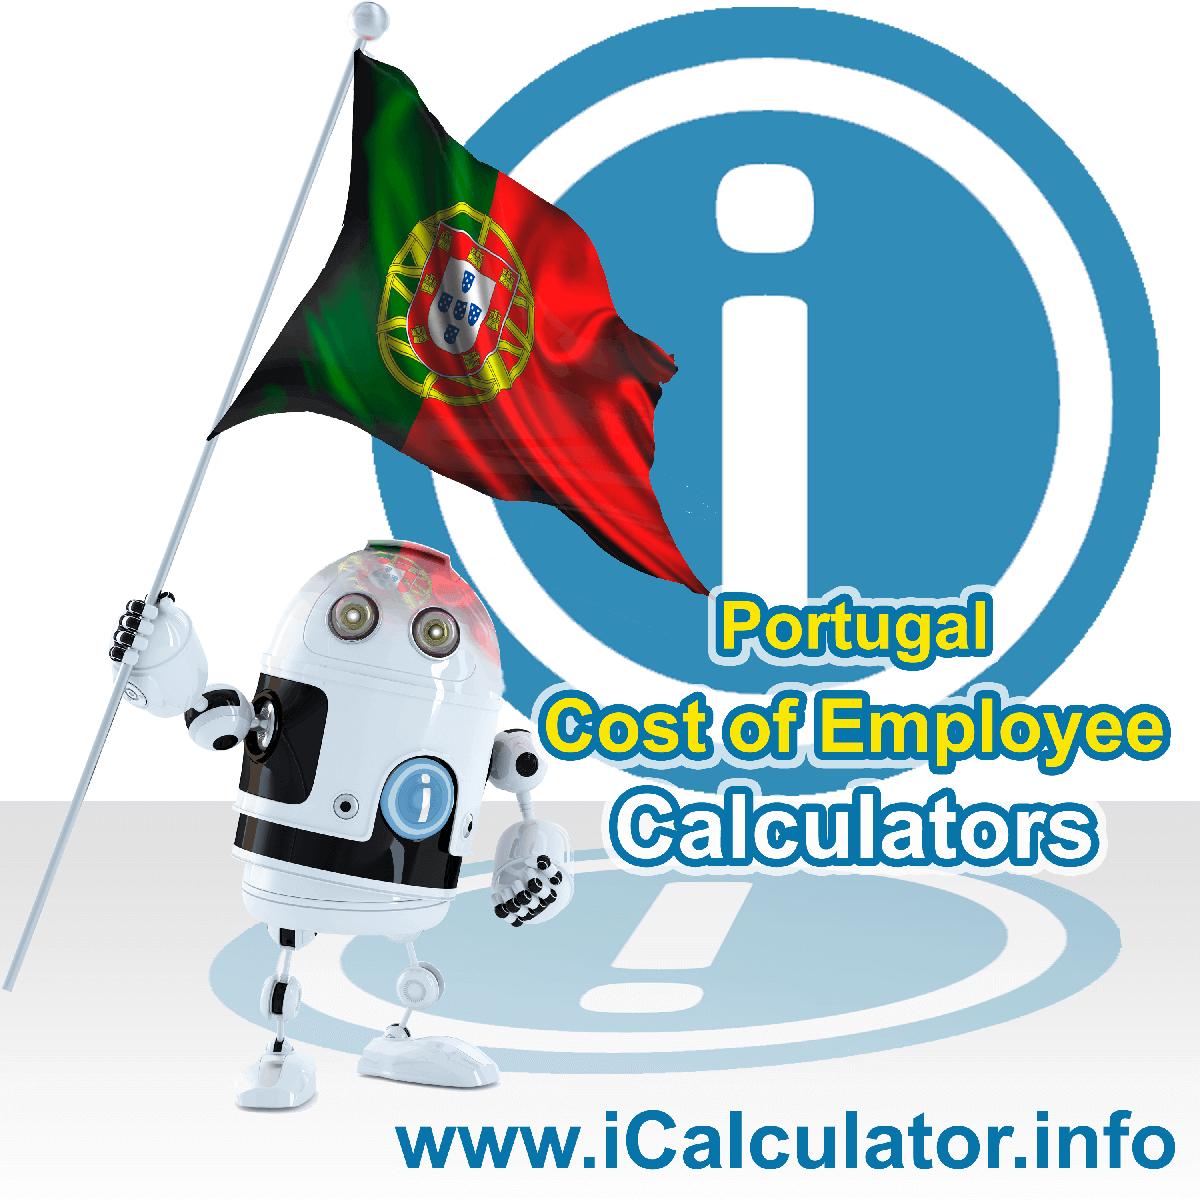 True Cost of an Employee in Portugal Calculator. This image shows a new employer in Portugal looking hiring a new employee, they calculate the cost of hiring an employee in Portugal using the True Cost of an Employee in Portugal calculator to understand their employment cost in Portugal in 2020